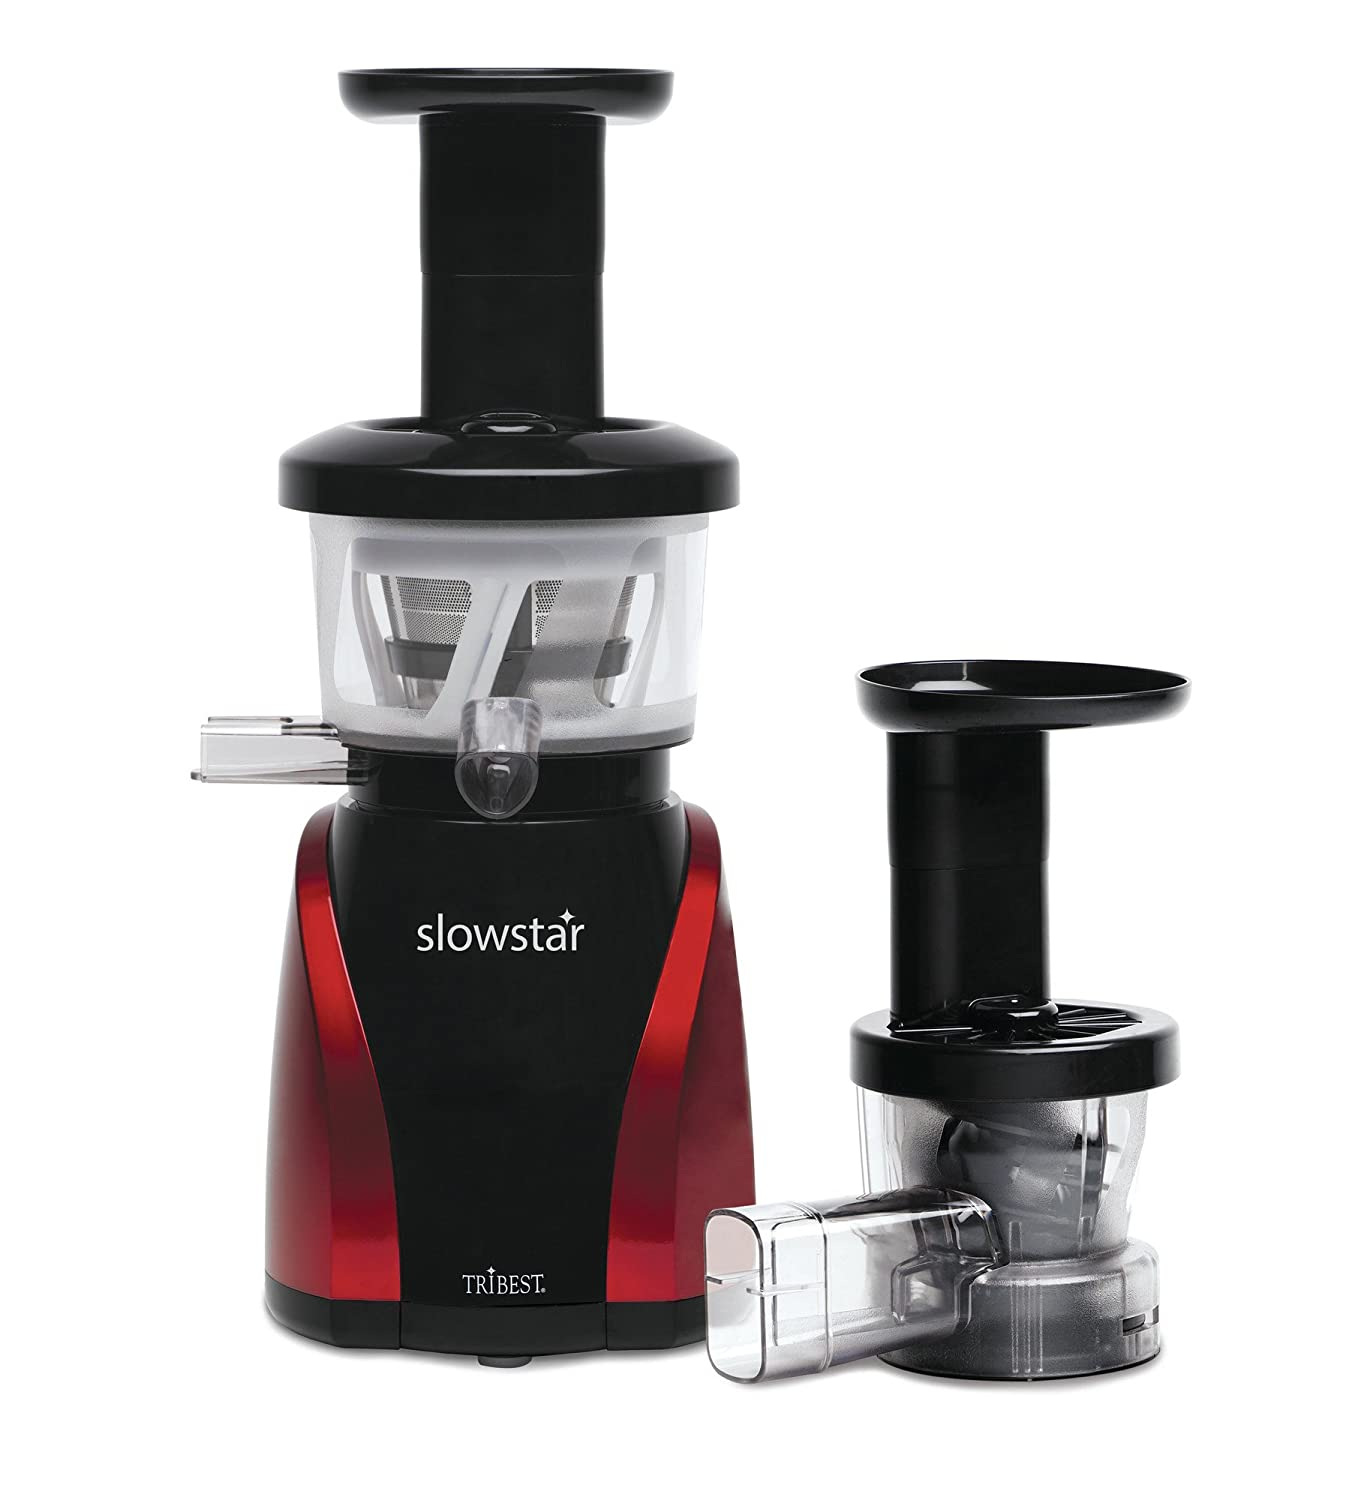 Tribest SW-2000-B Slowstar Vertical Slow Juicer and Mincer, Red/Black